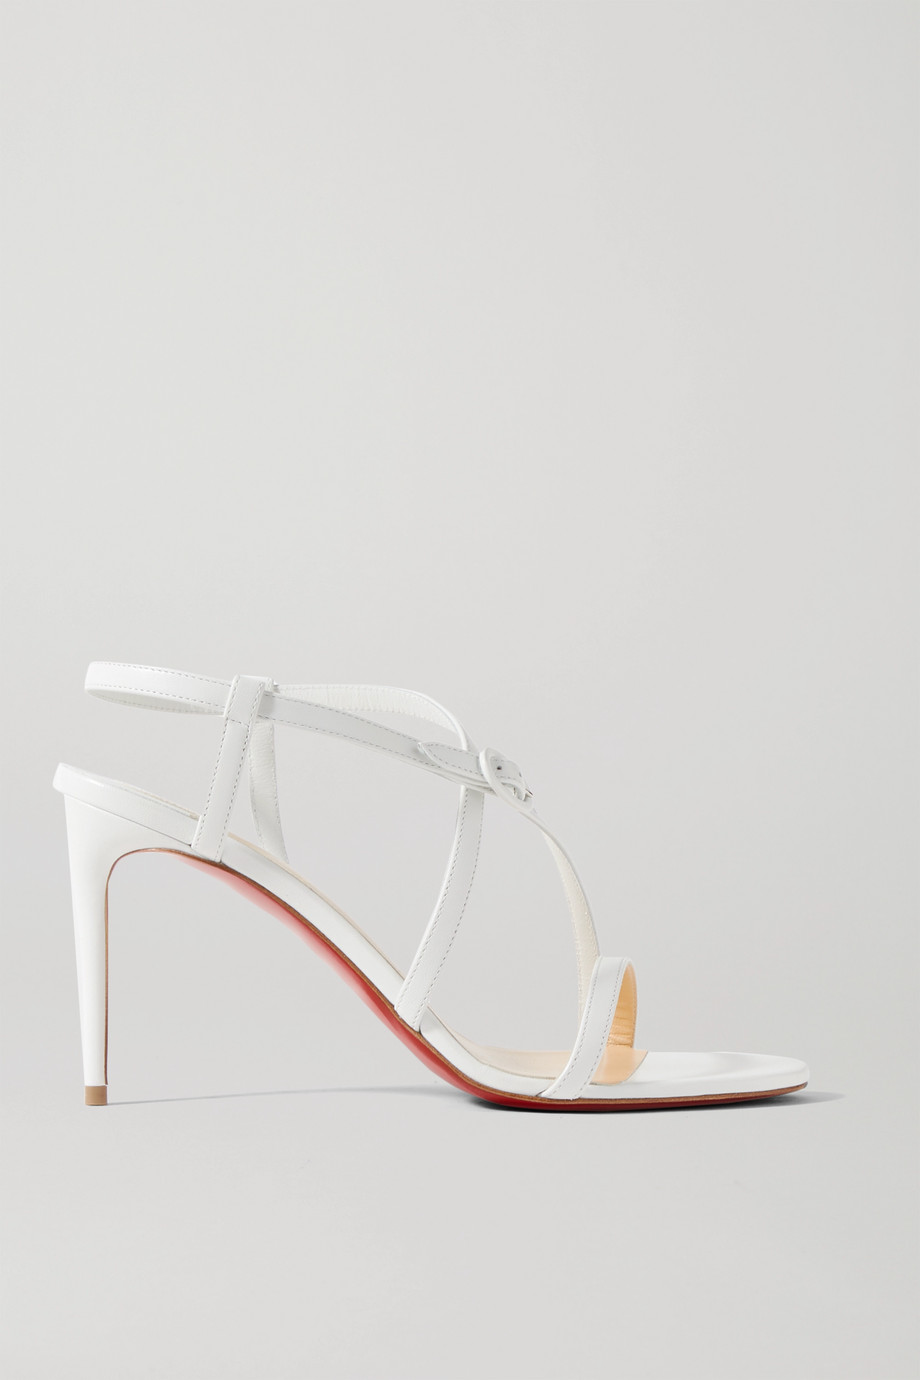 CHRISTIAN LOUBOUTIN Selima 85 leather sandals